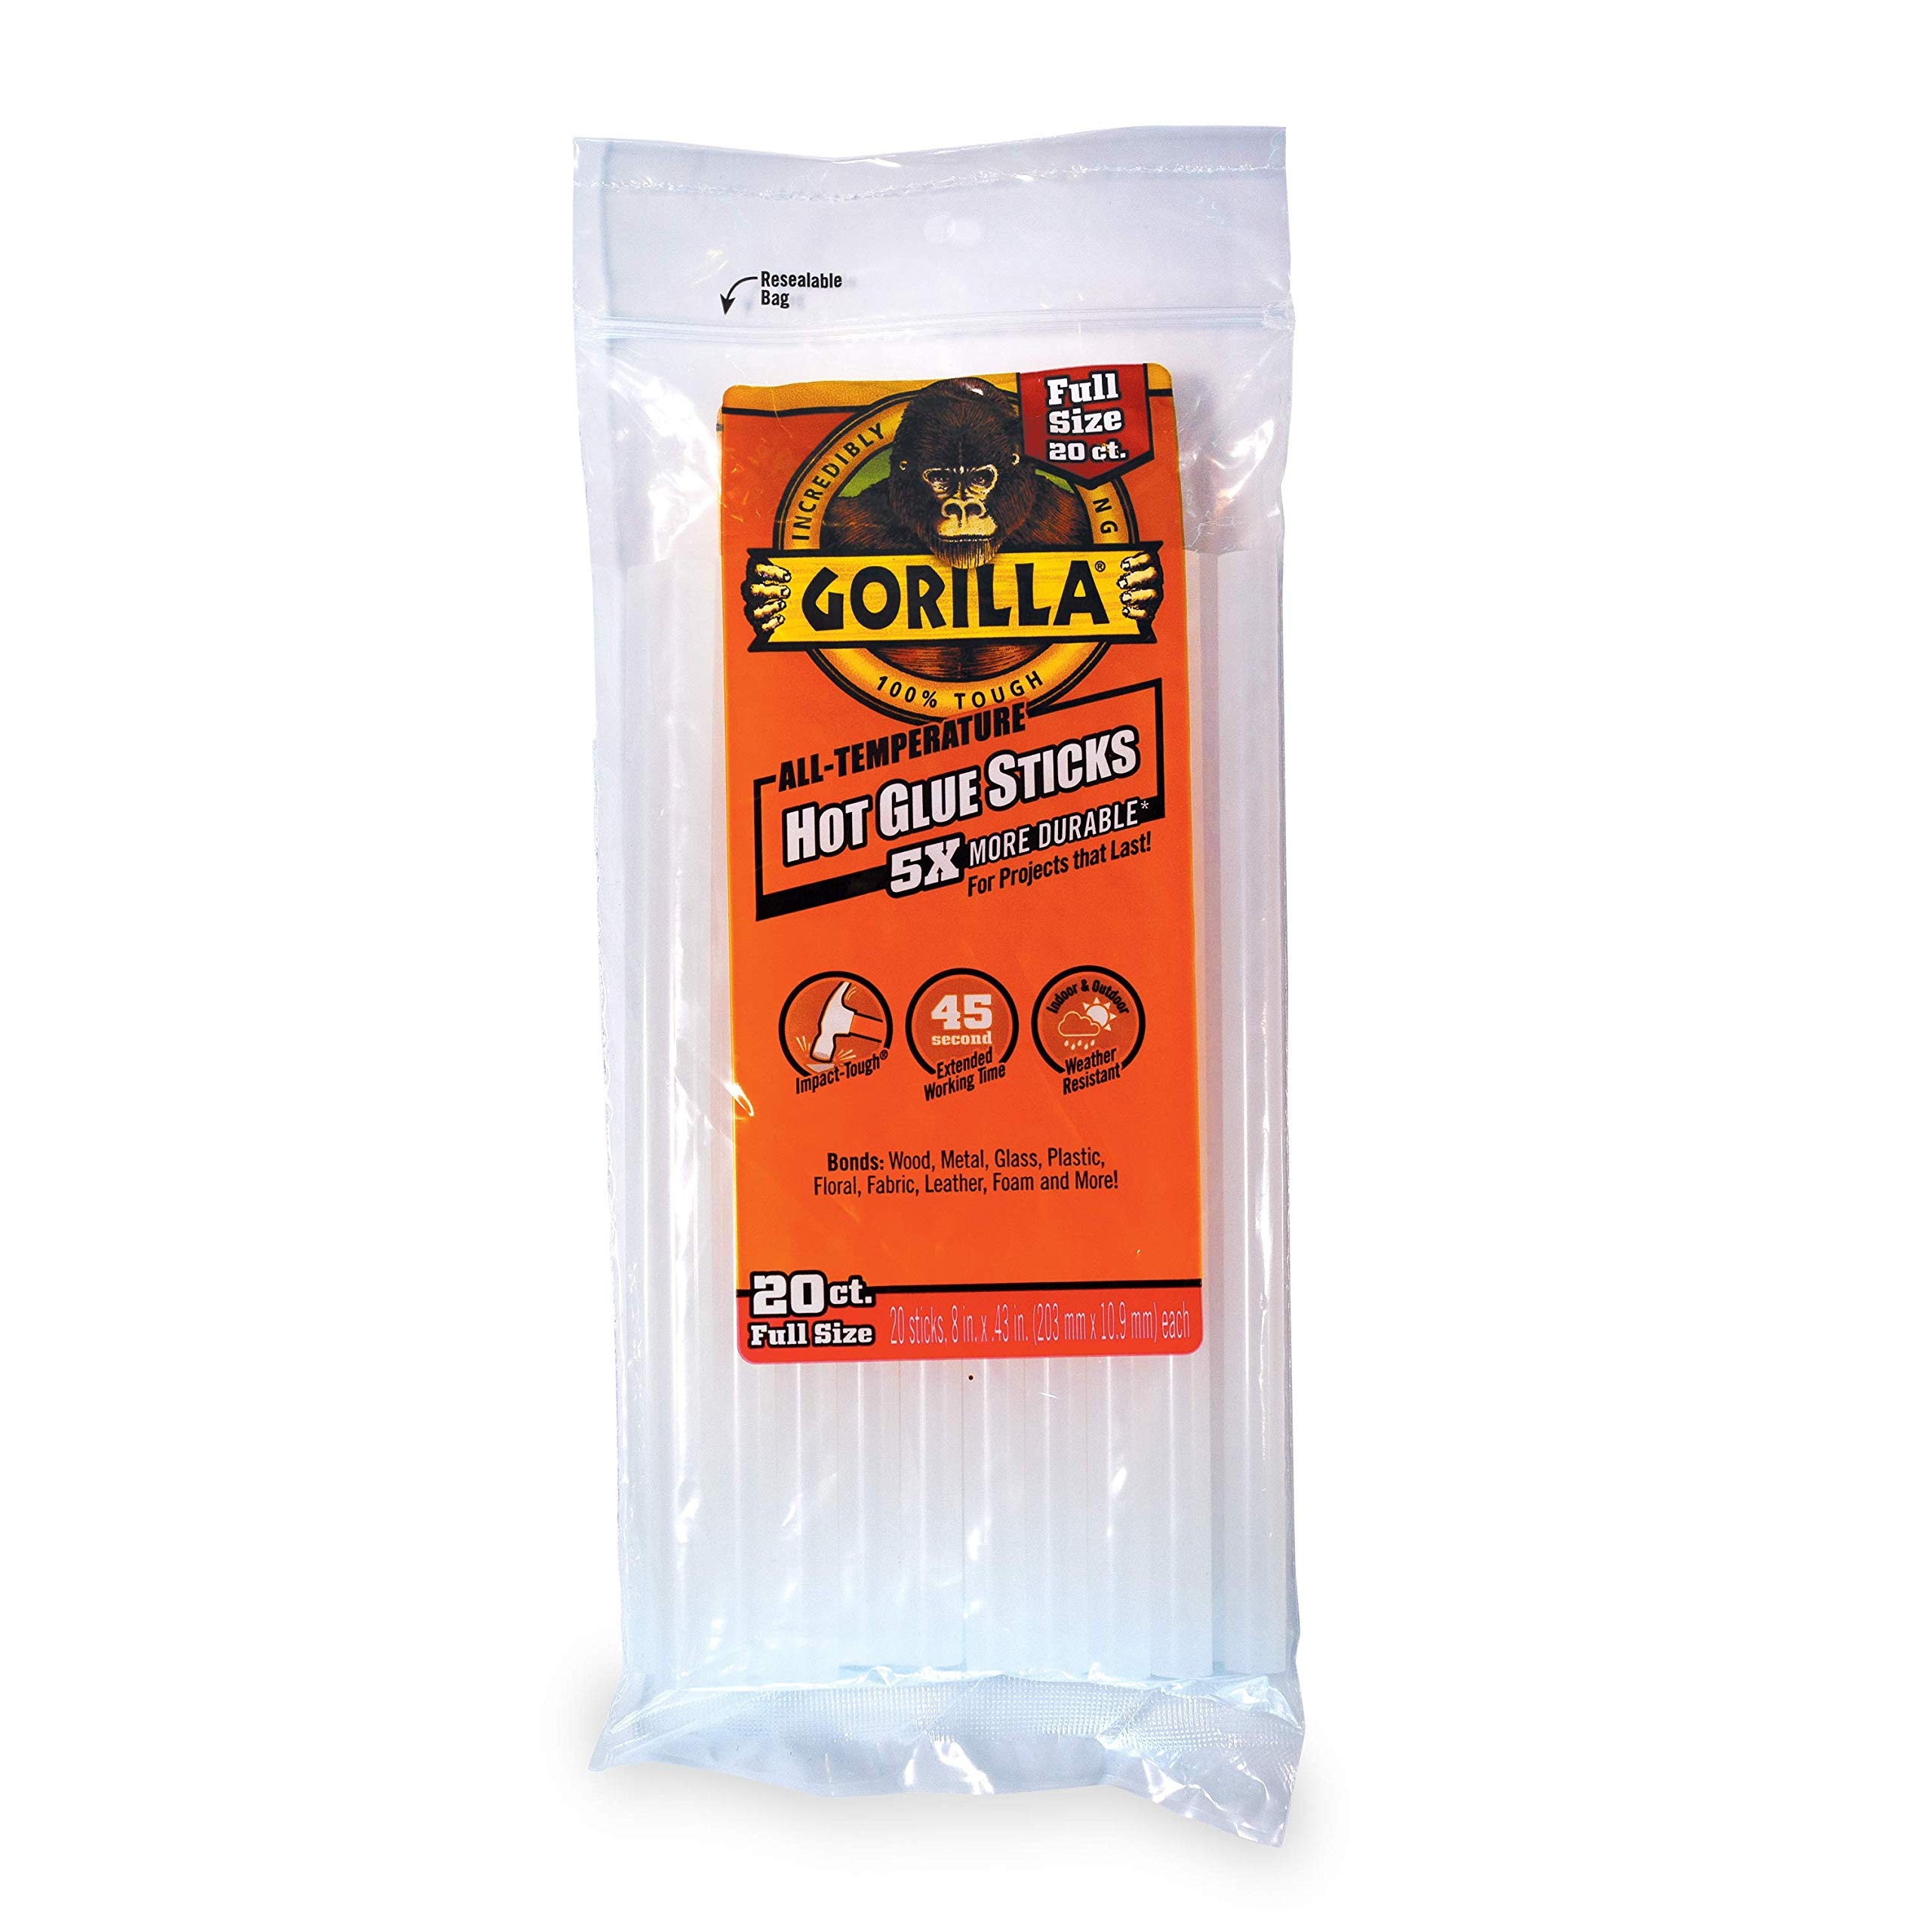 Gorilla Hot Glue Sticks, Full Size, 8'' Long x .43'' Diameter, 20 Count, Clear, (Pack of 1)